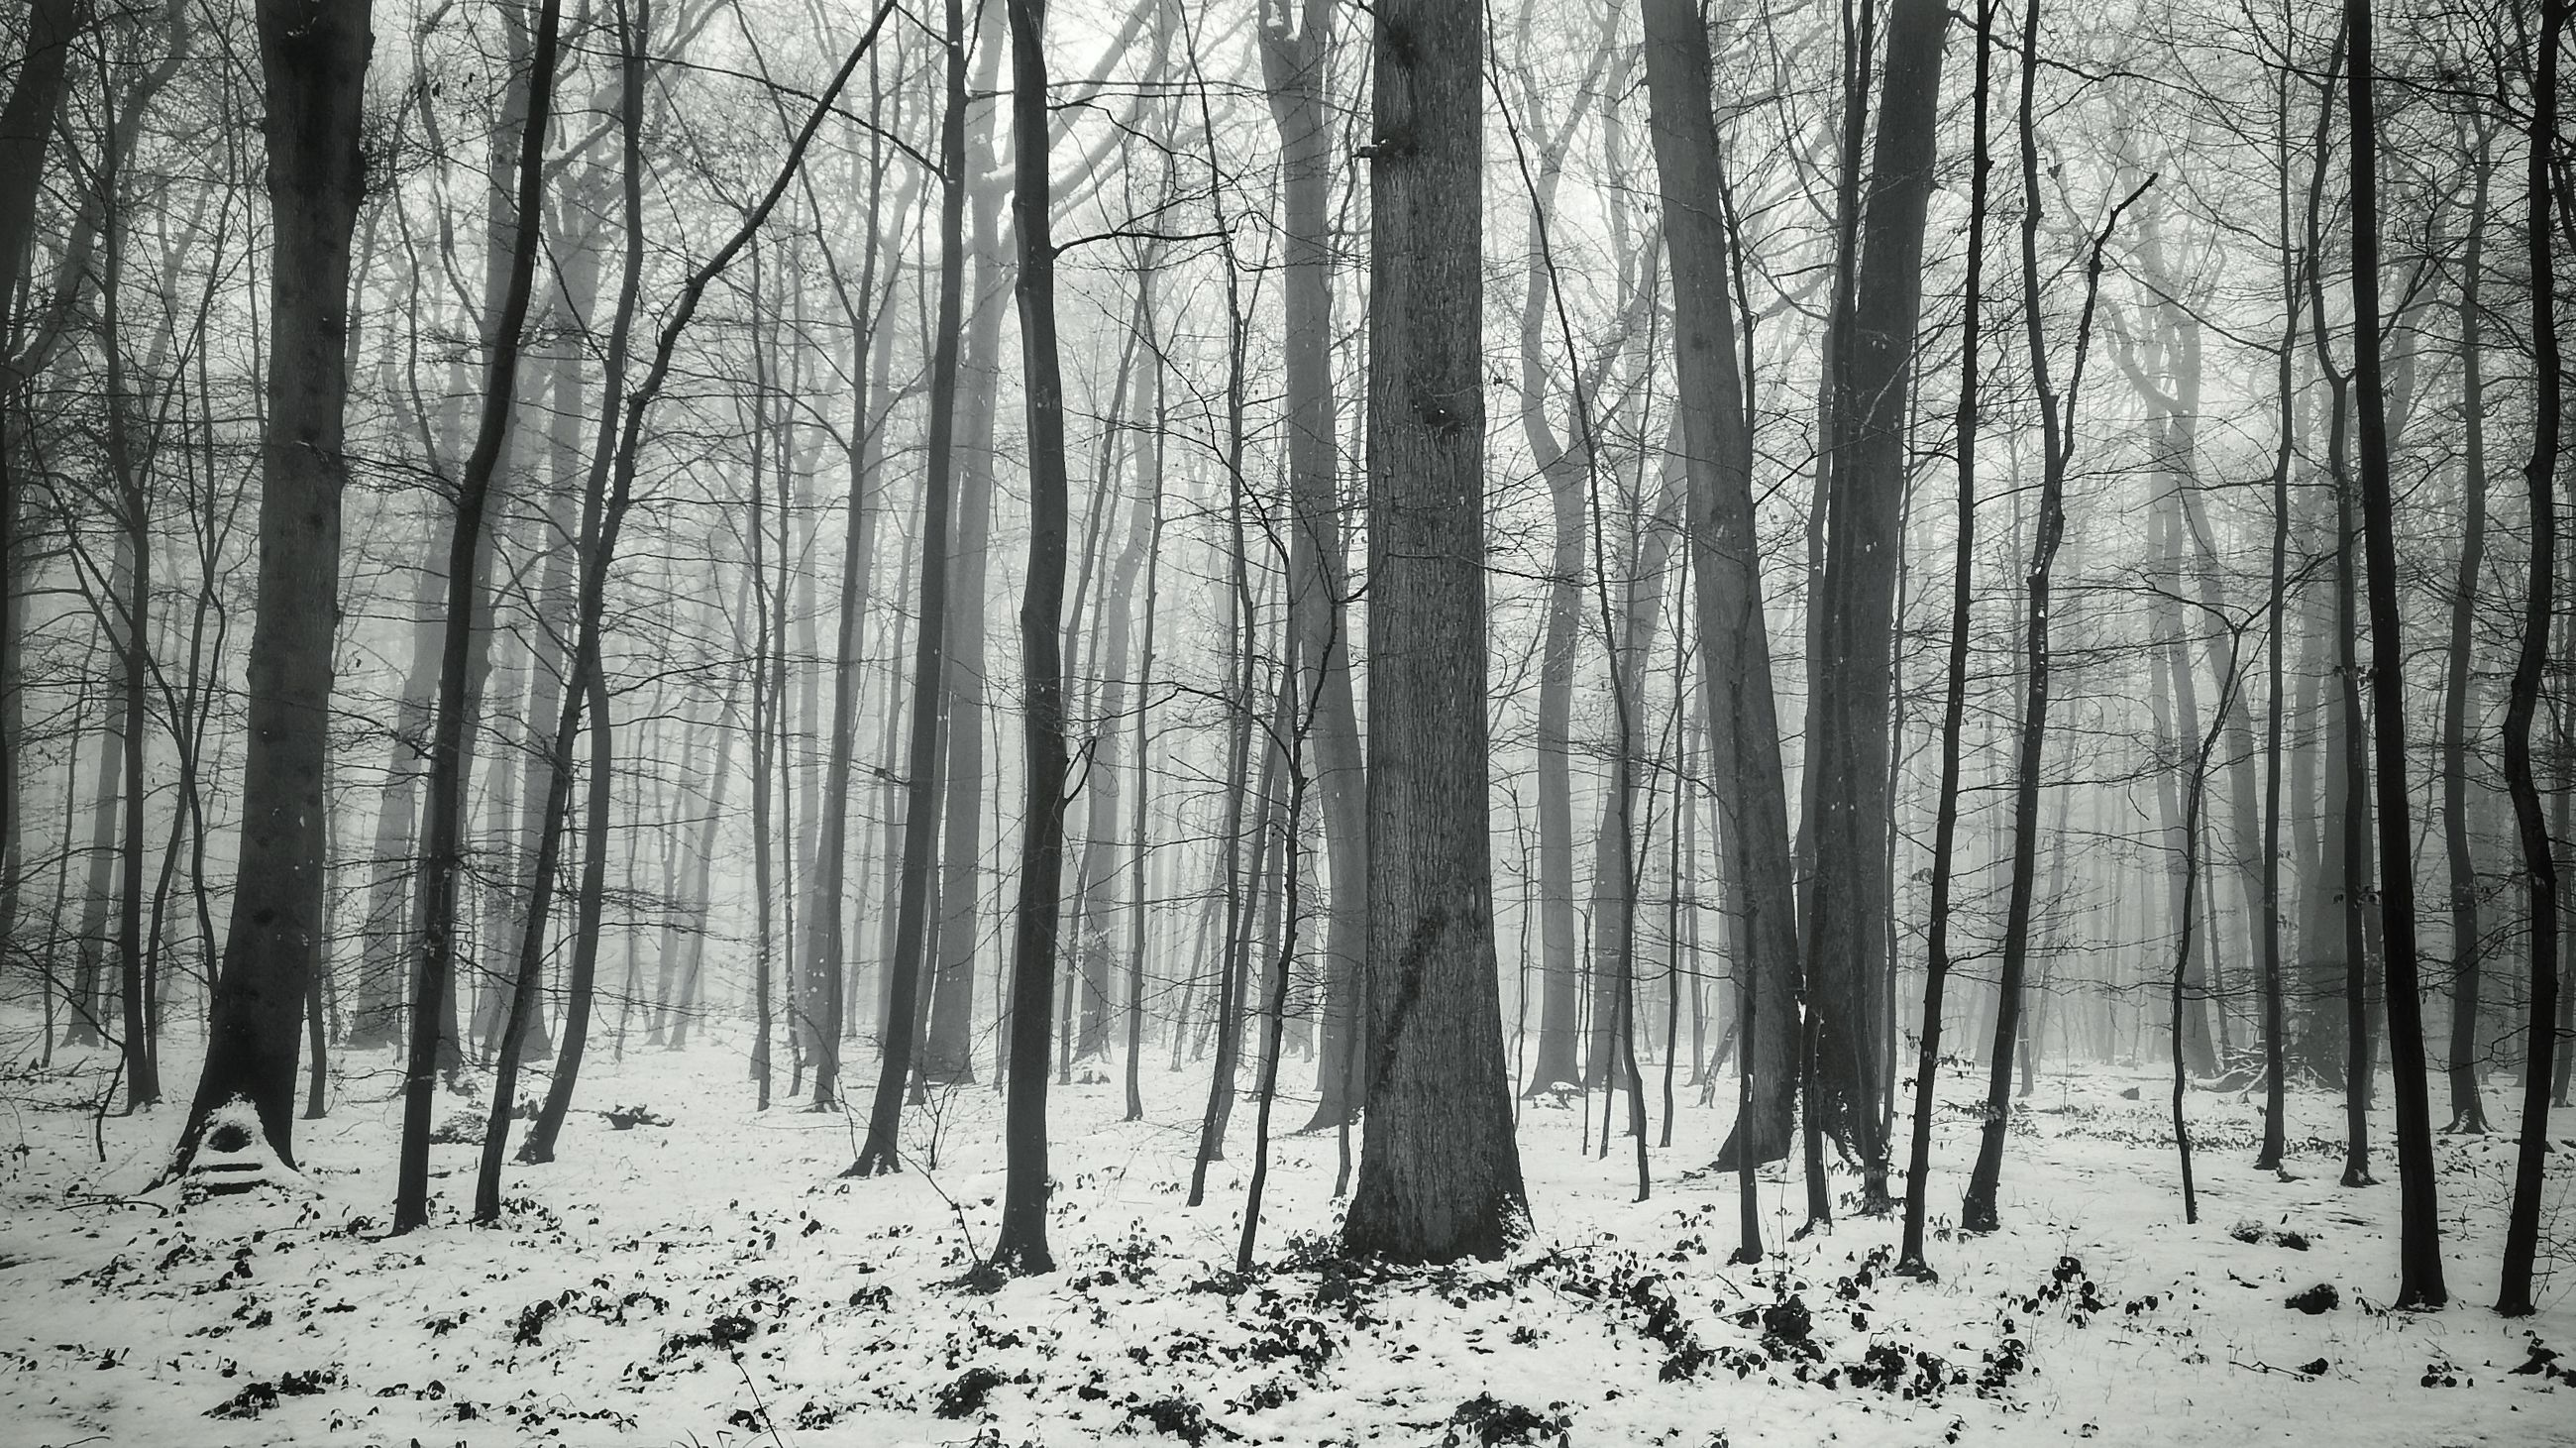 tree, forest, land, plant, snow, winter, cold temperature, tree trunk, woodland, trunk, fog, tranquility, environment, beauty in nature, no people, nature, tranquil scene, scenics - nature, non-urban scene, outdoors, snowing, climate